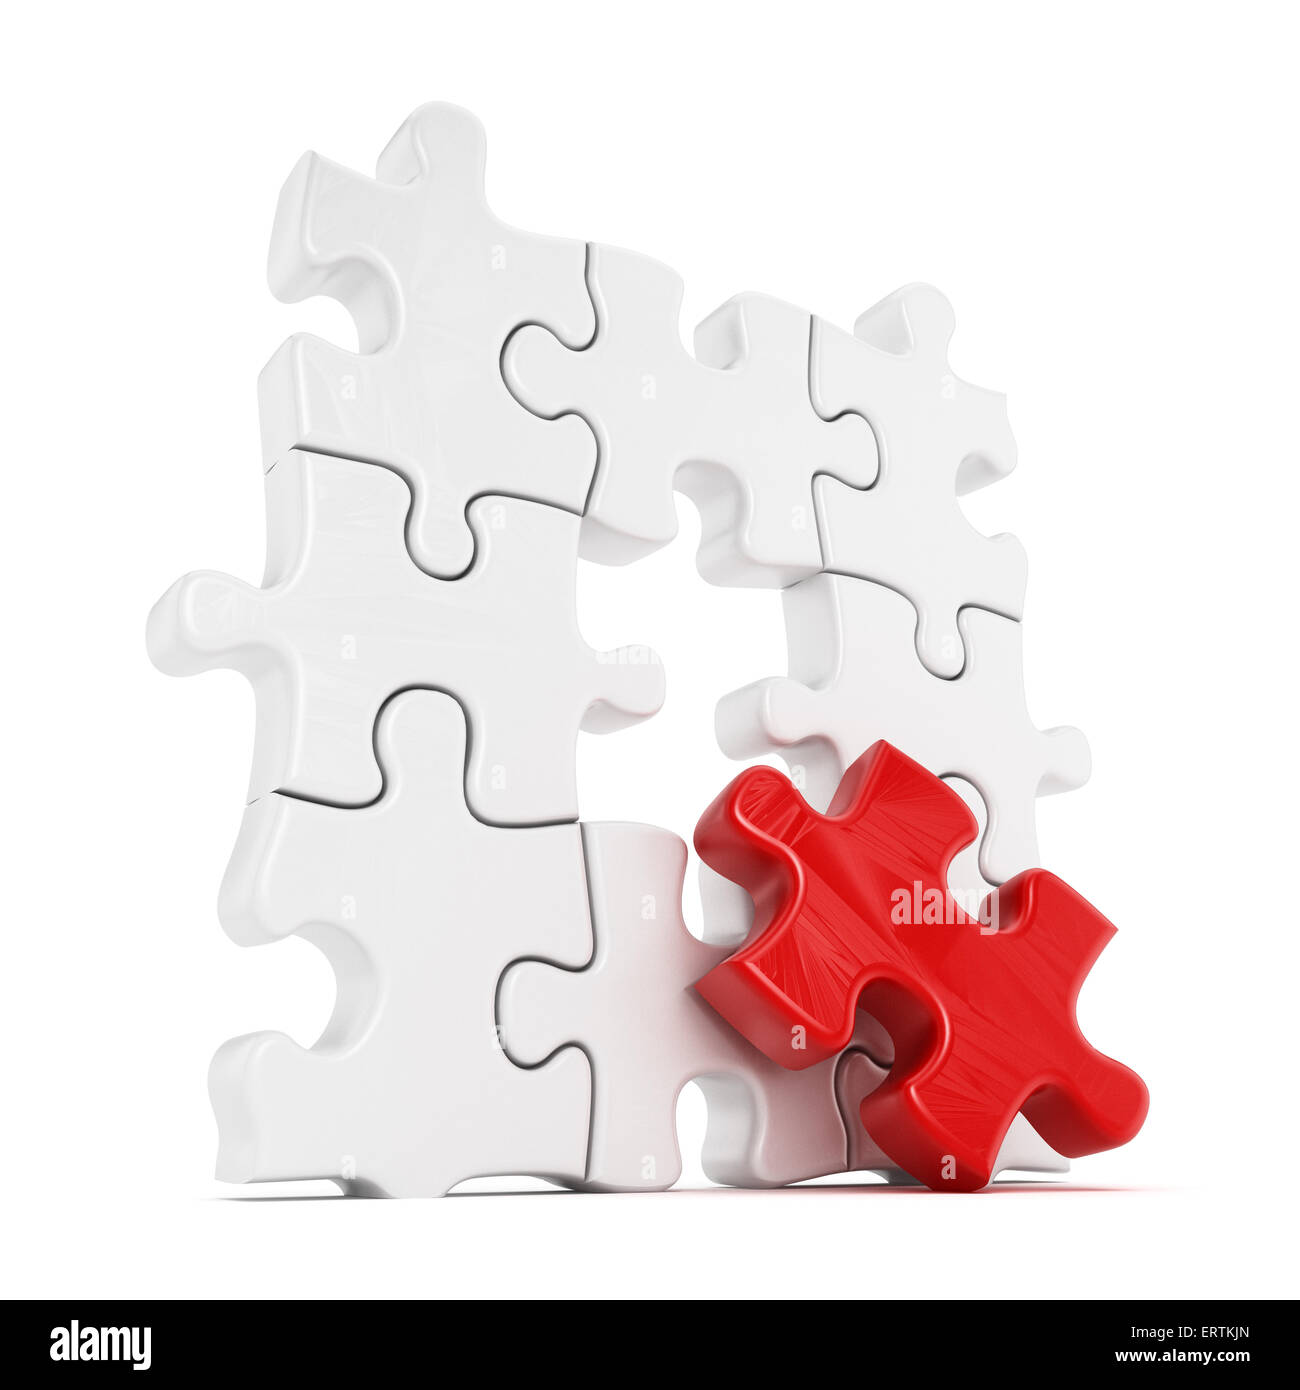 Puzzle with one red part missing isolated on white background - Stock Image